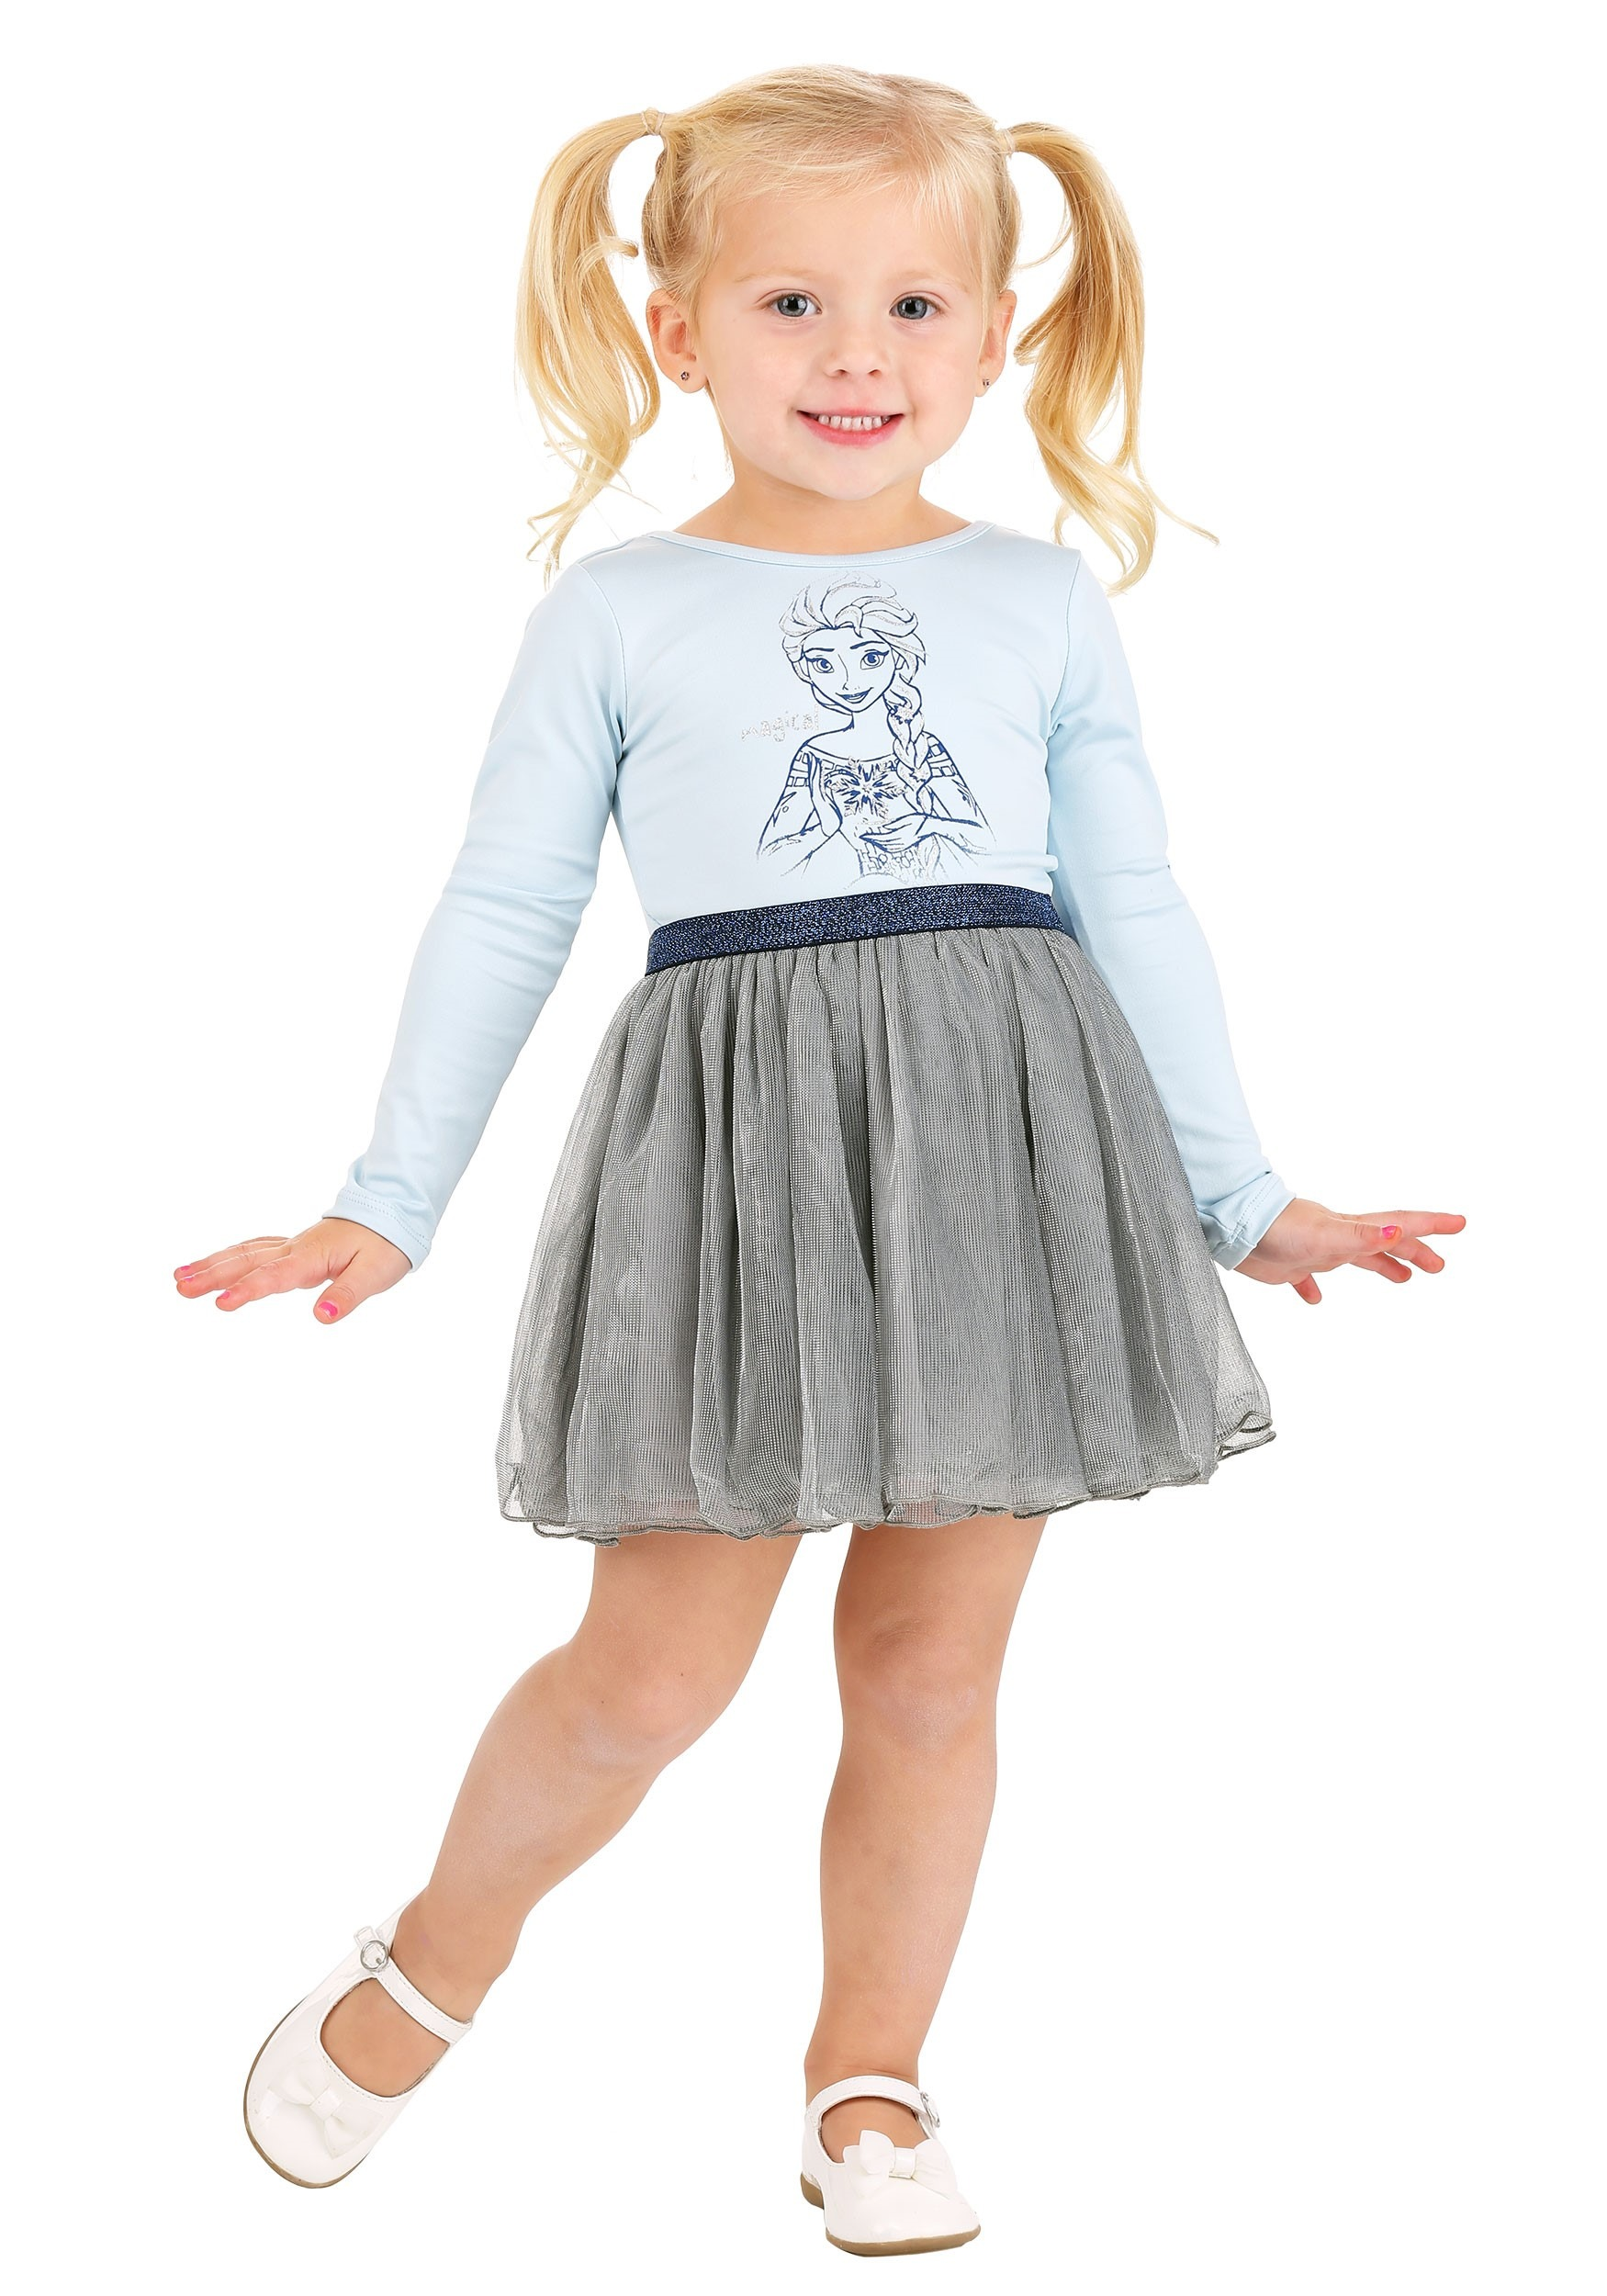 Frozen Elsa Ballerina Dress for Girls